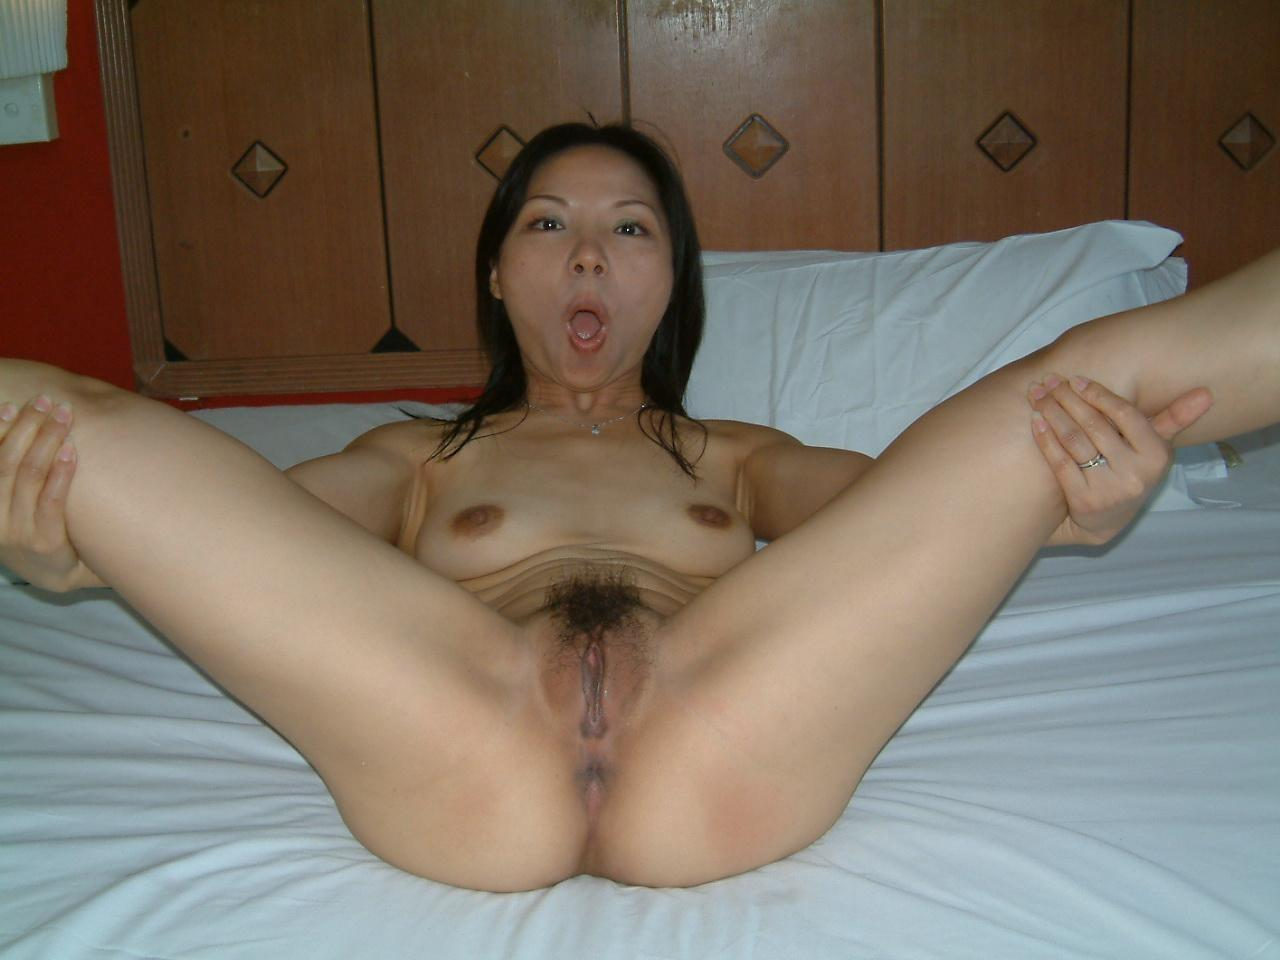 Naked posing asian Mature women